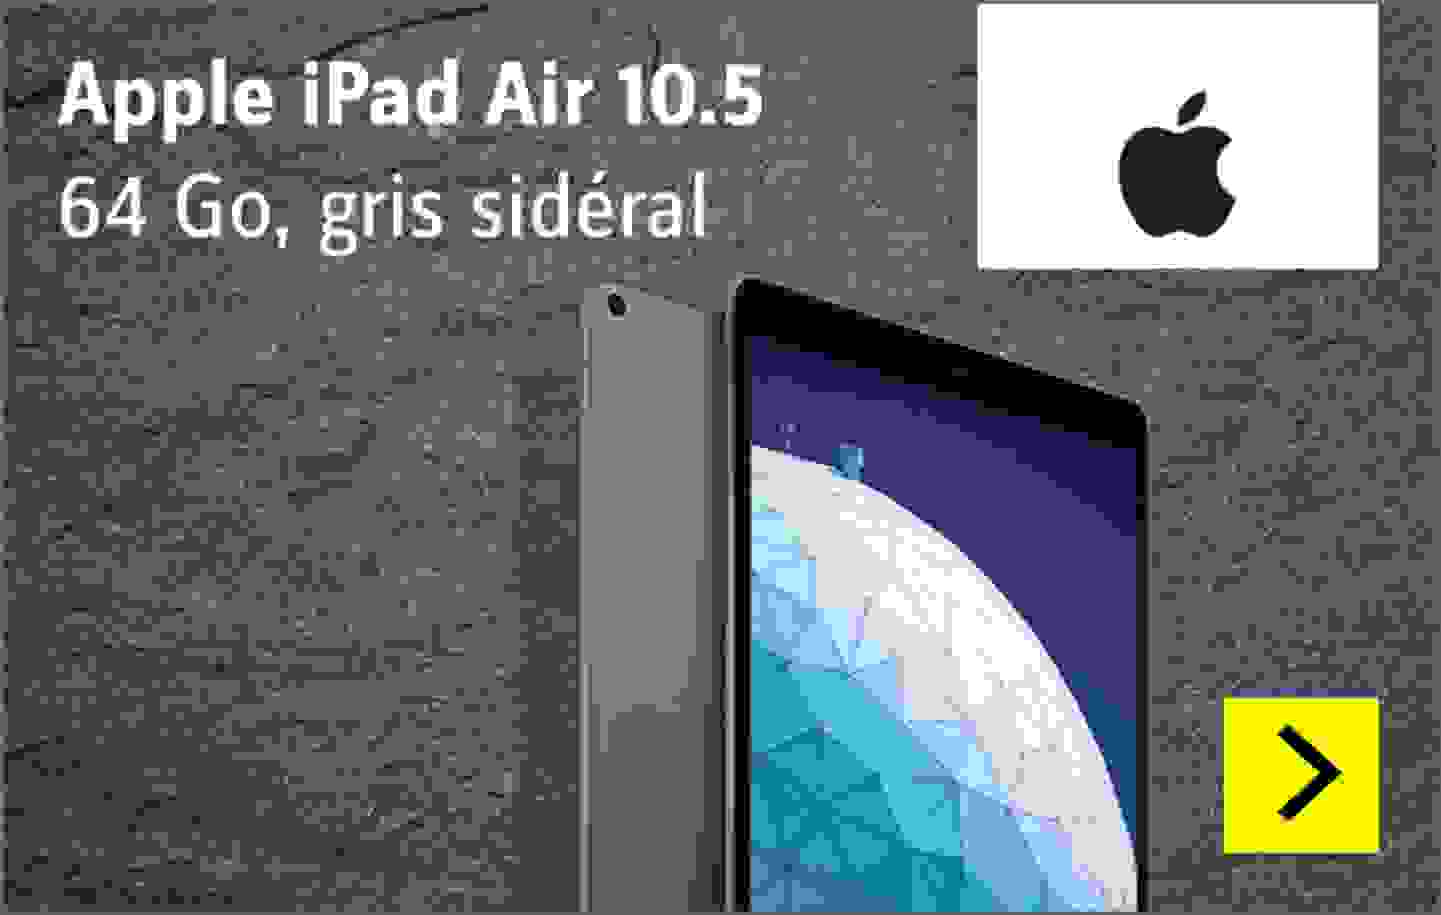 Apple iPad Air 10.5 WiFi 64 Go gris sidéral